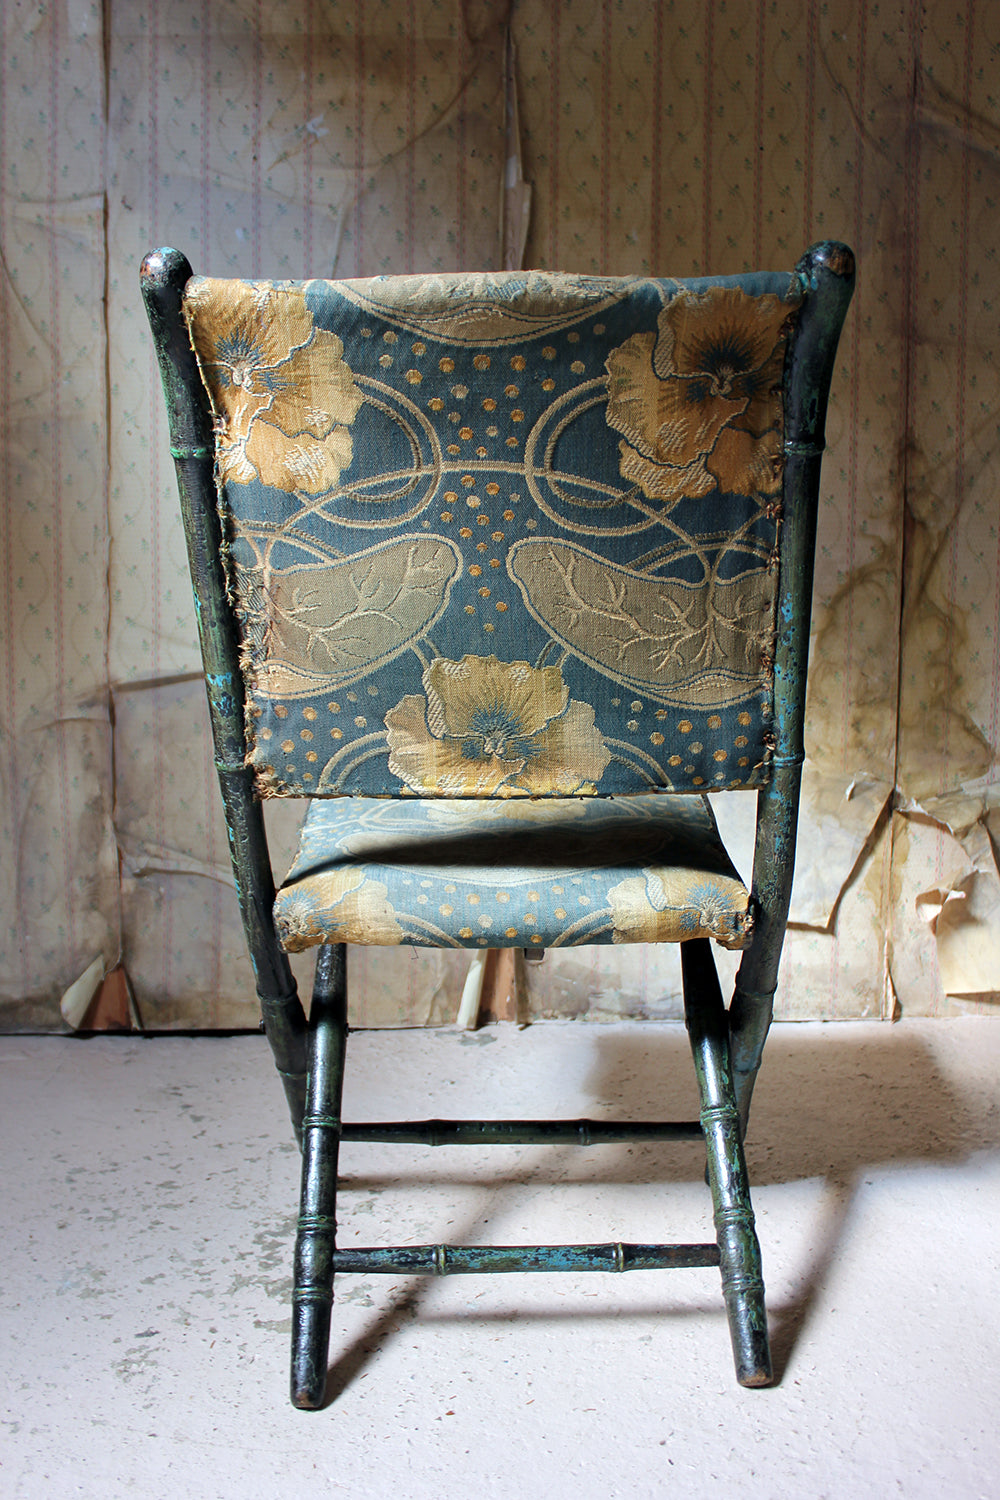 A Rare Regency Period Faux Bamboo Folding Campaign Chair c.1815